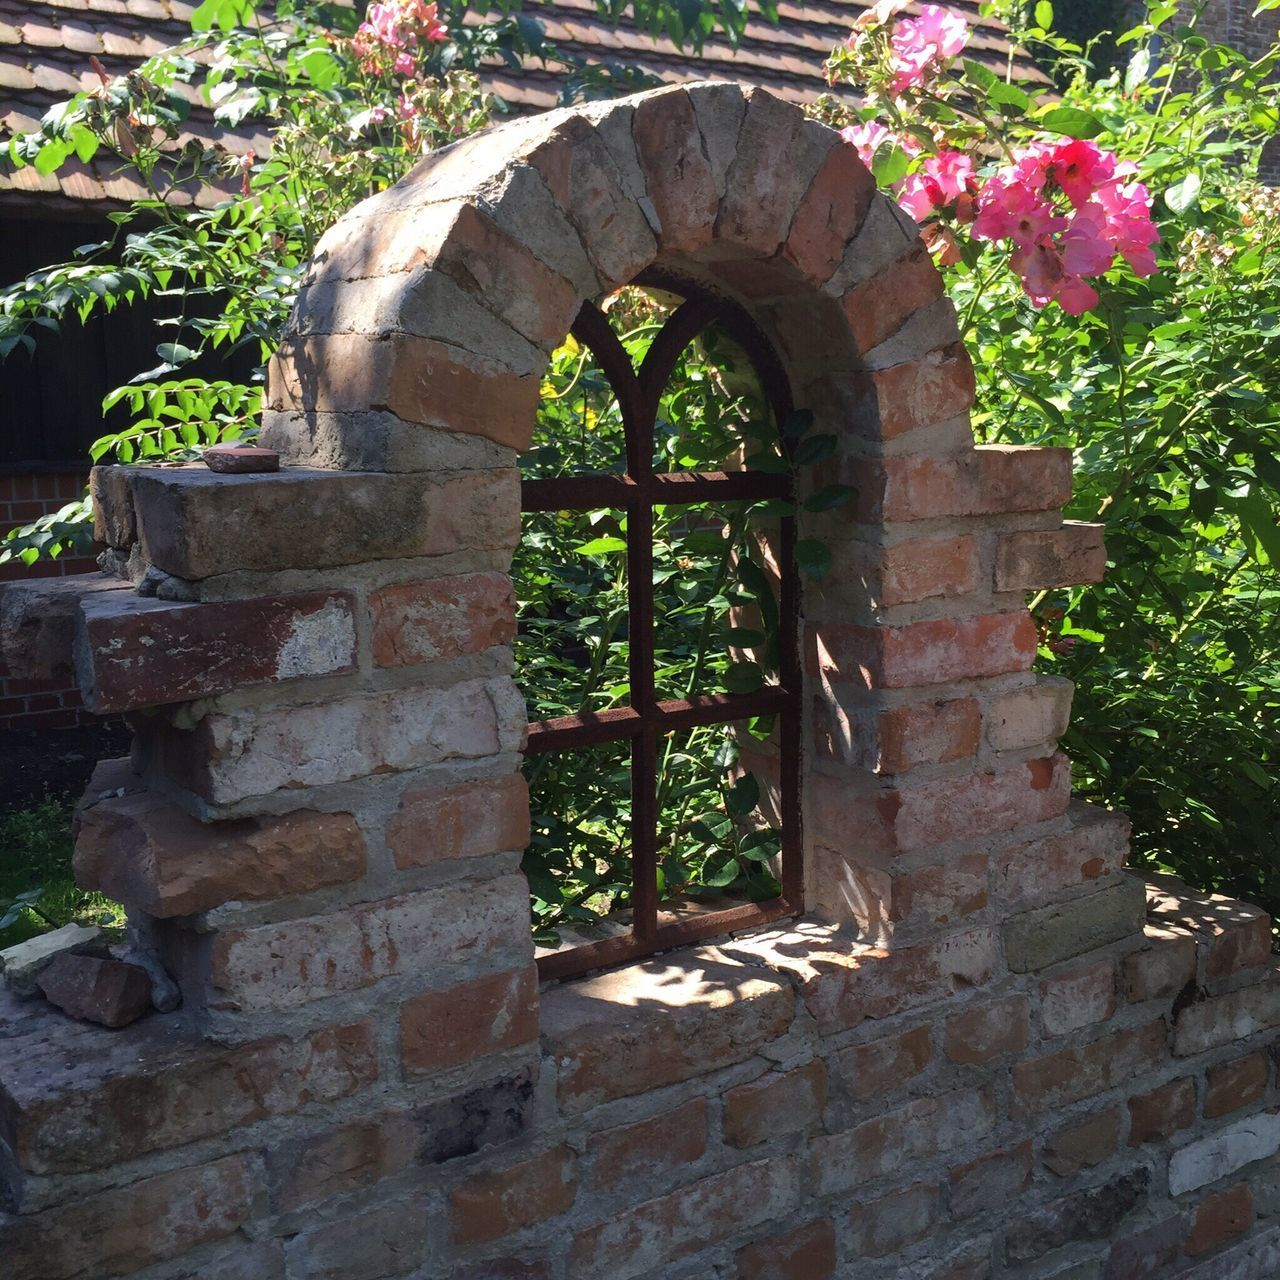 architecture, arch, built structure, brick wall, day, plant, history, no people, growth, outdoors, flower, building exterior, nature